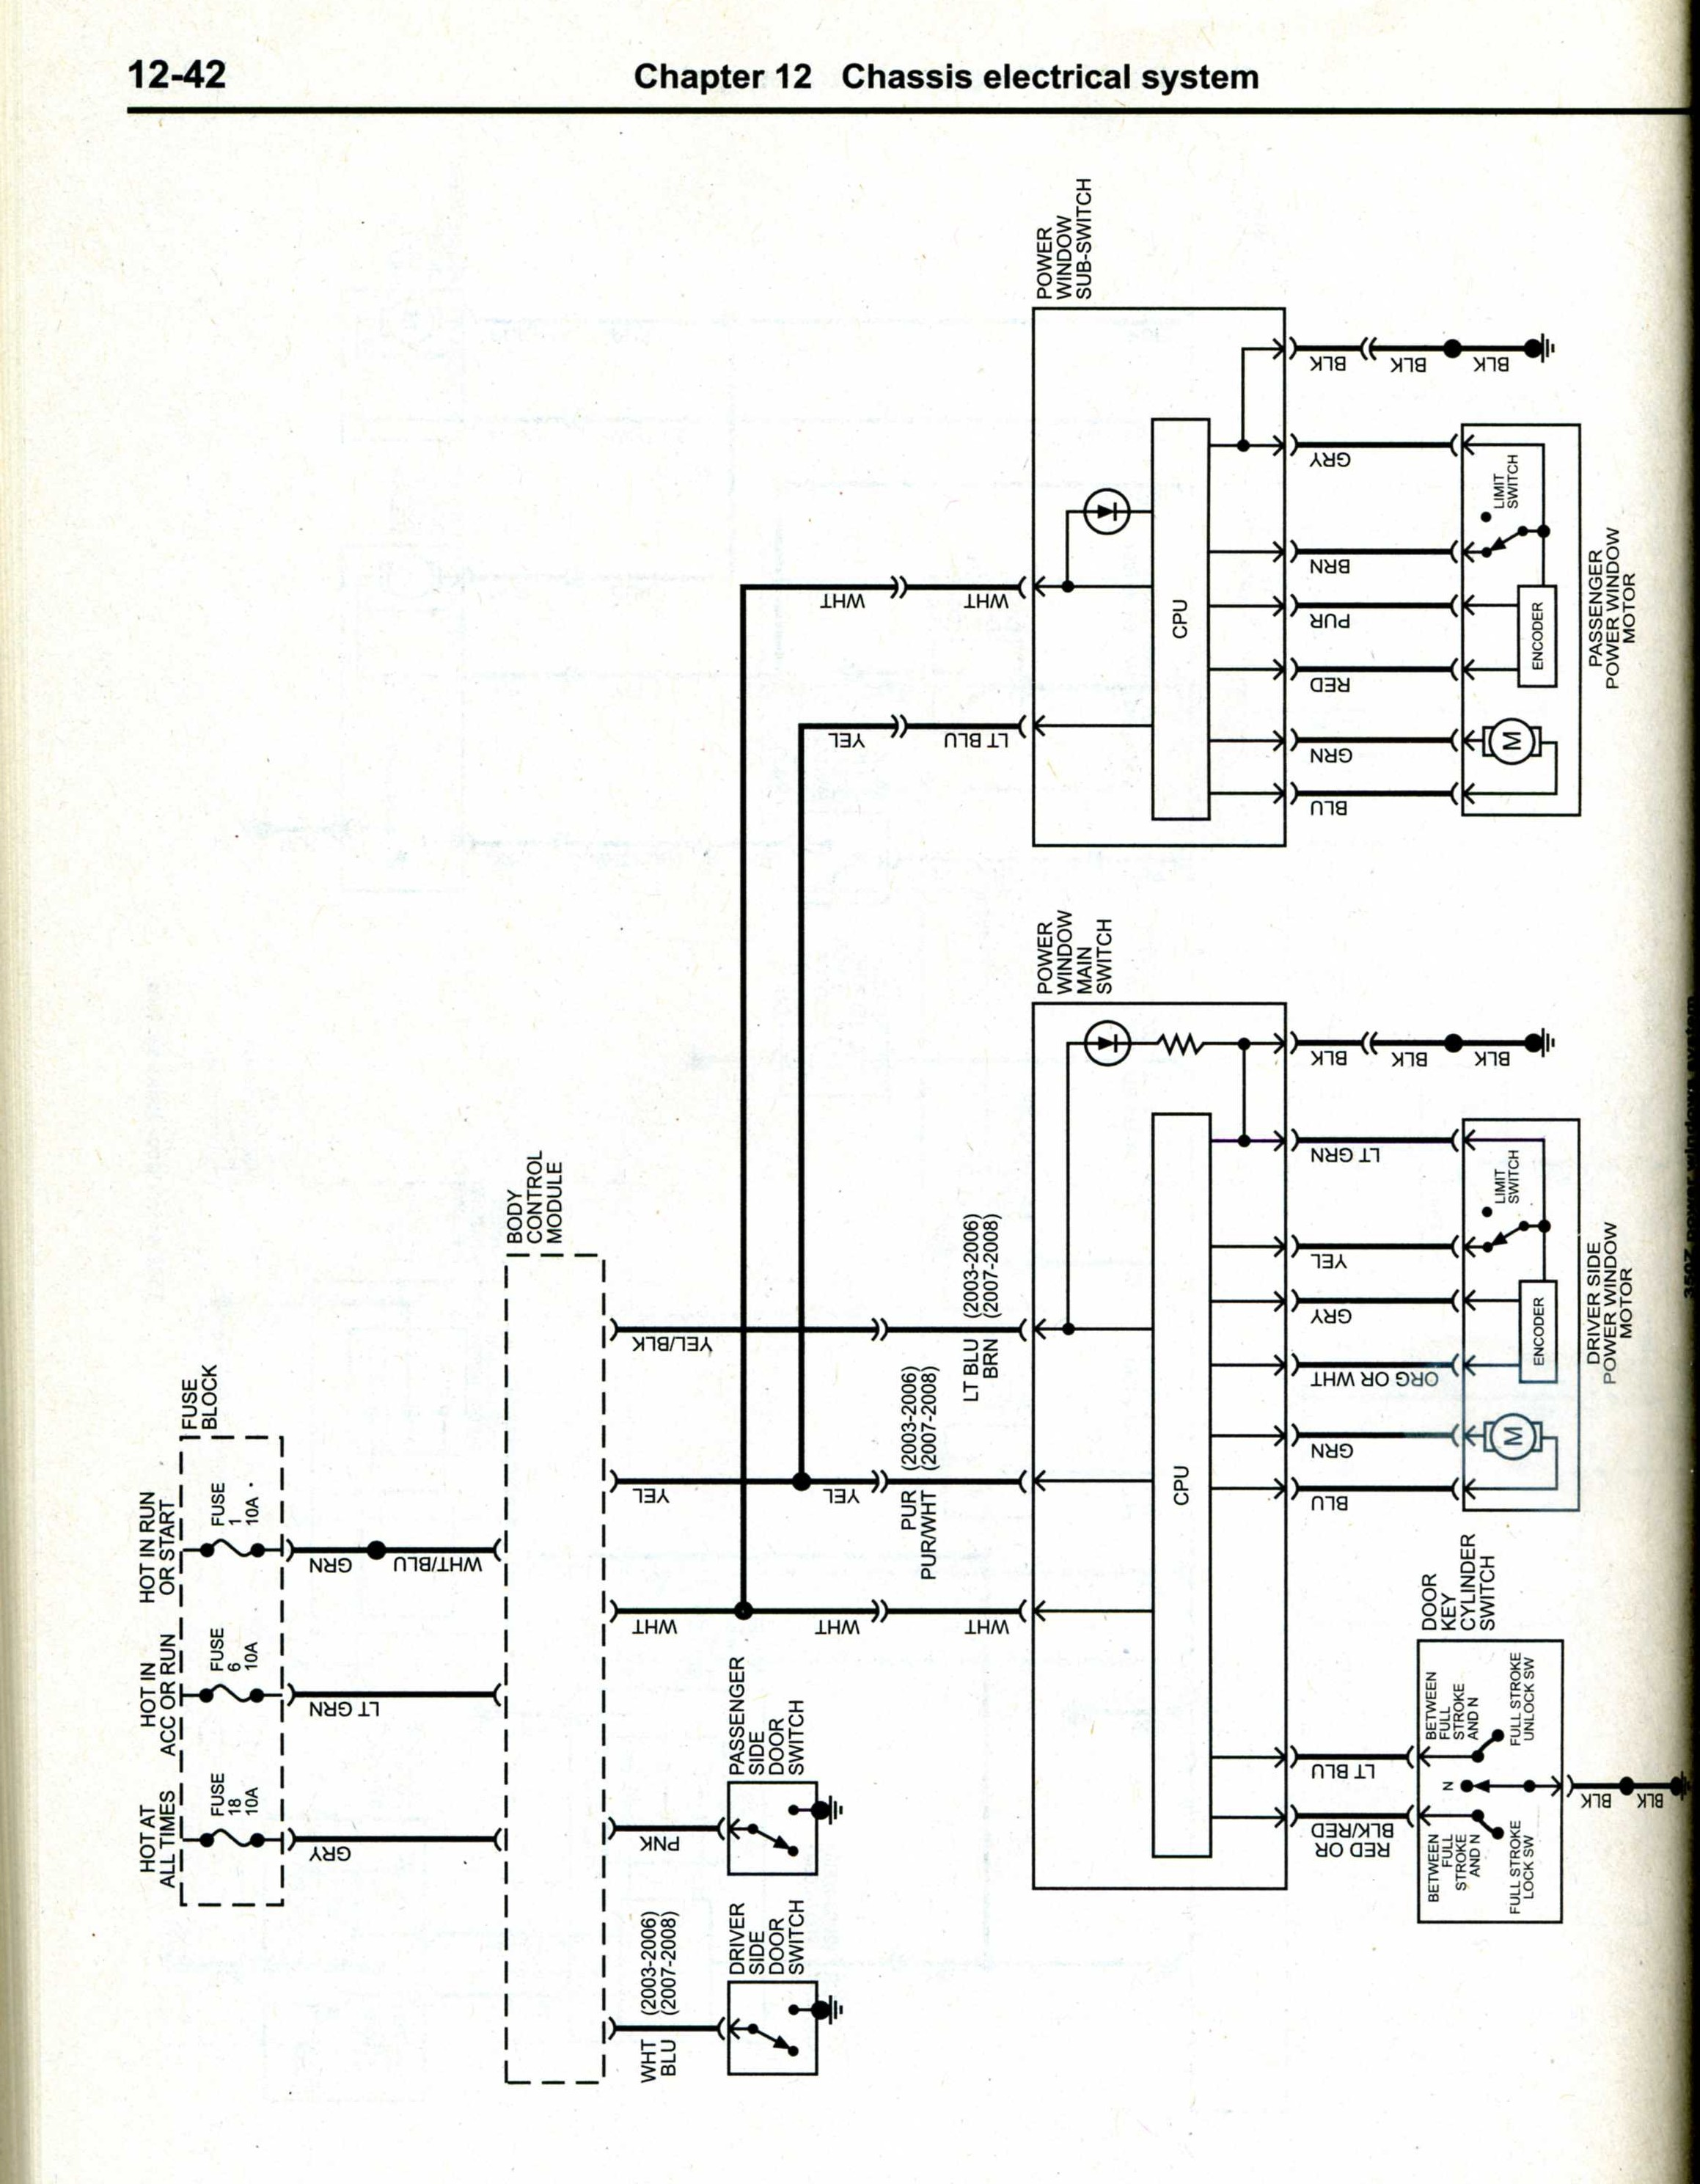 Nissan 350z Radio Wire Diagram - Roslonek.net